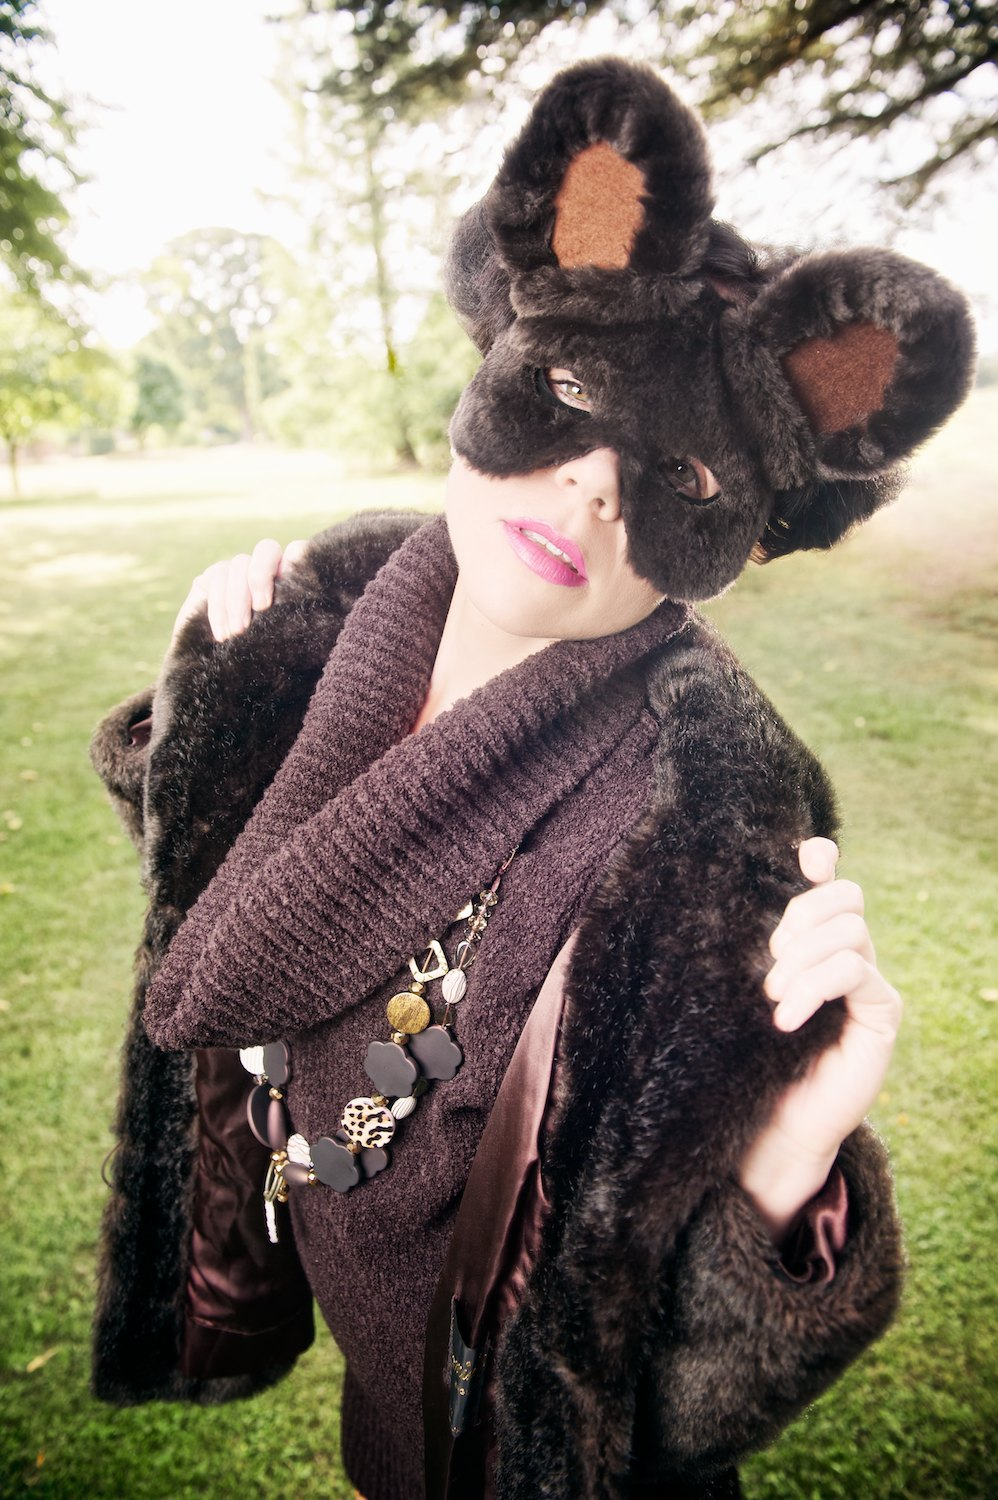 mystic magic, Pixbeat Photo, mask, bear mask, masquerade, animal, animal masks, fashion, vintage, vintage fashion, photo, photography, fur, feathers, couture, designer, inspiration, imagination, avant garde, creative, fashion photography, Animal Heritage, fashion designer, mask designer, bear